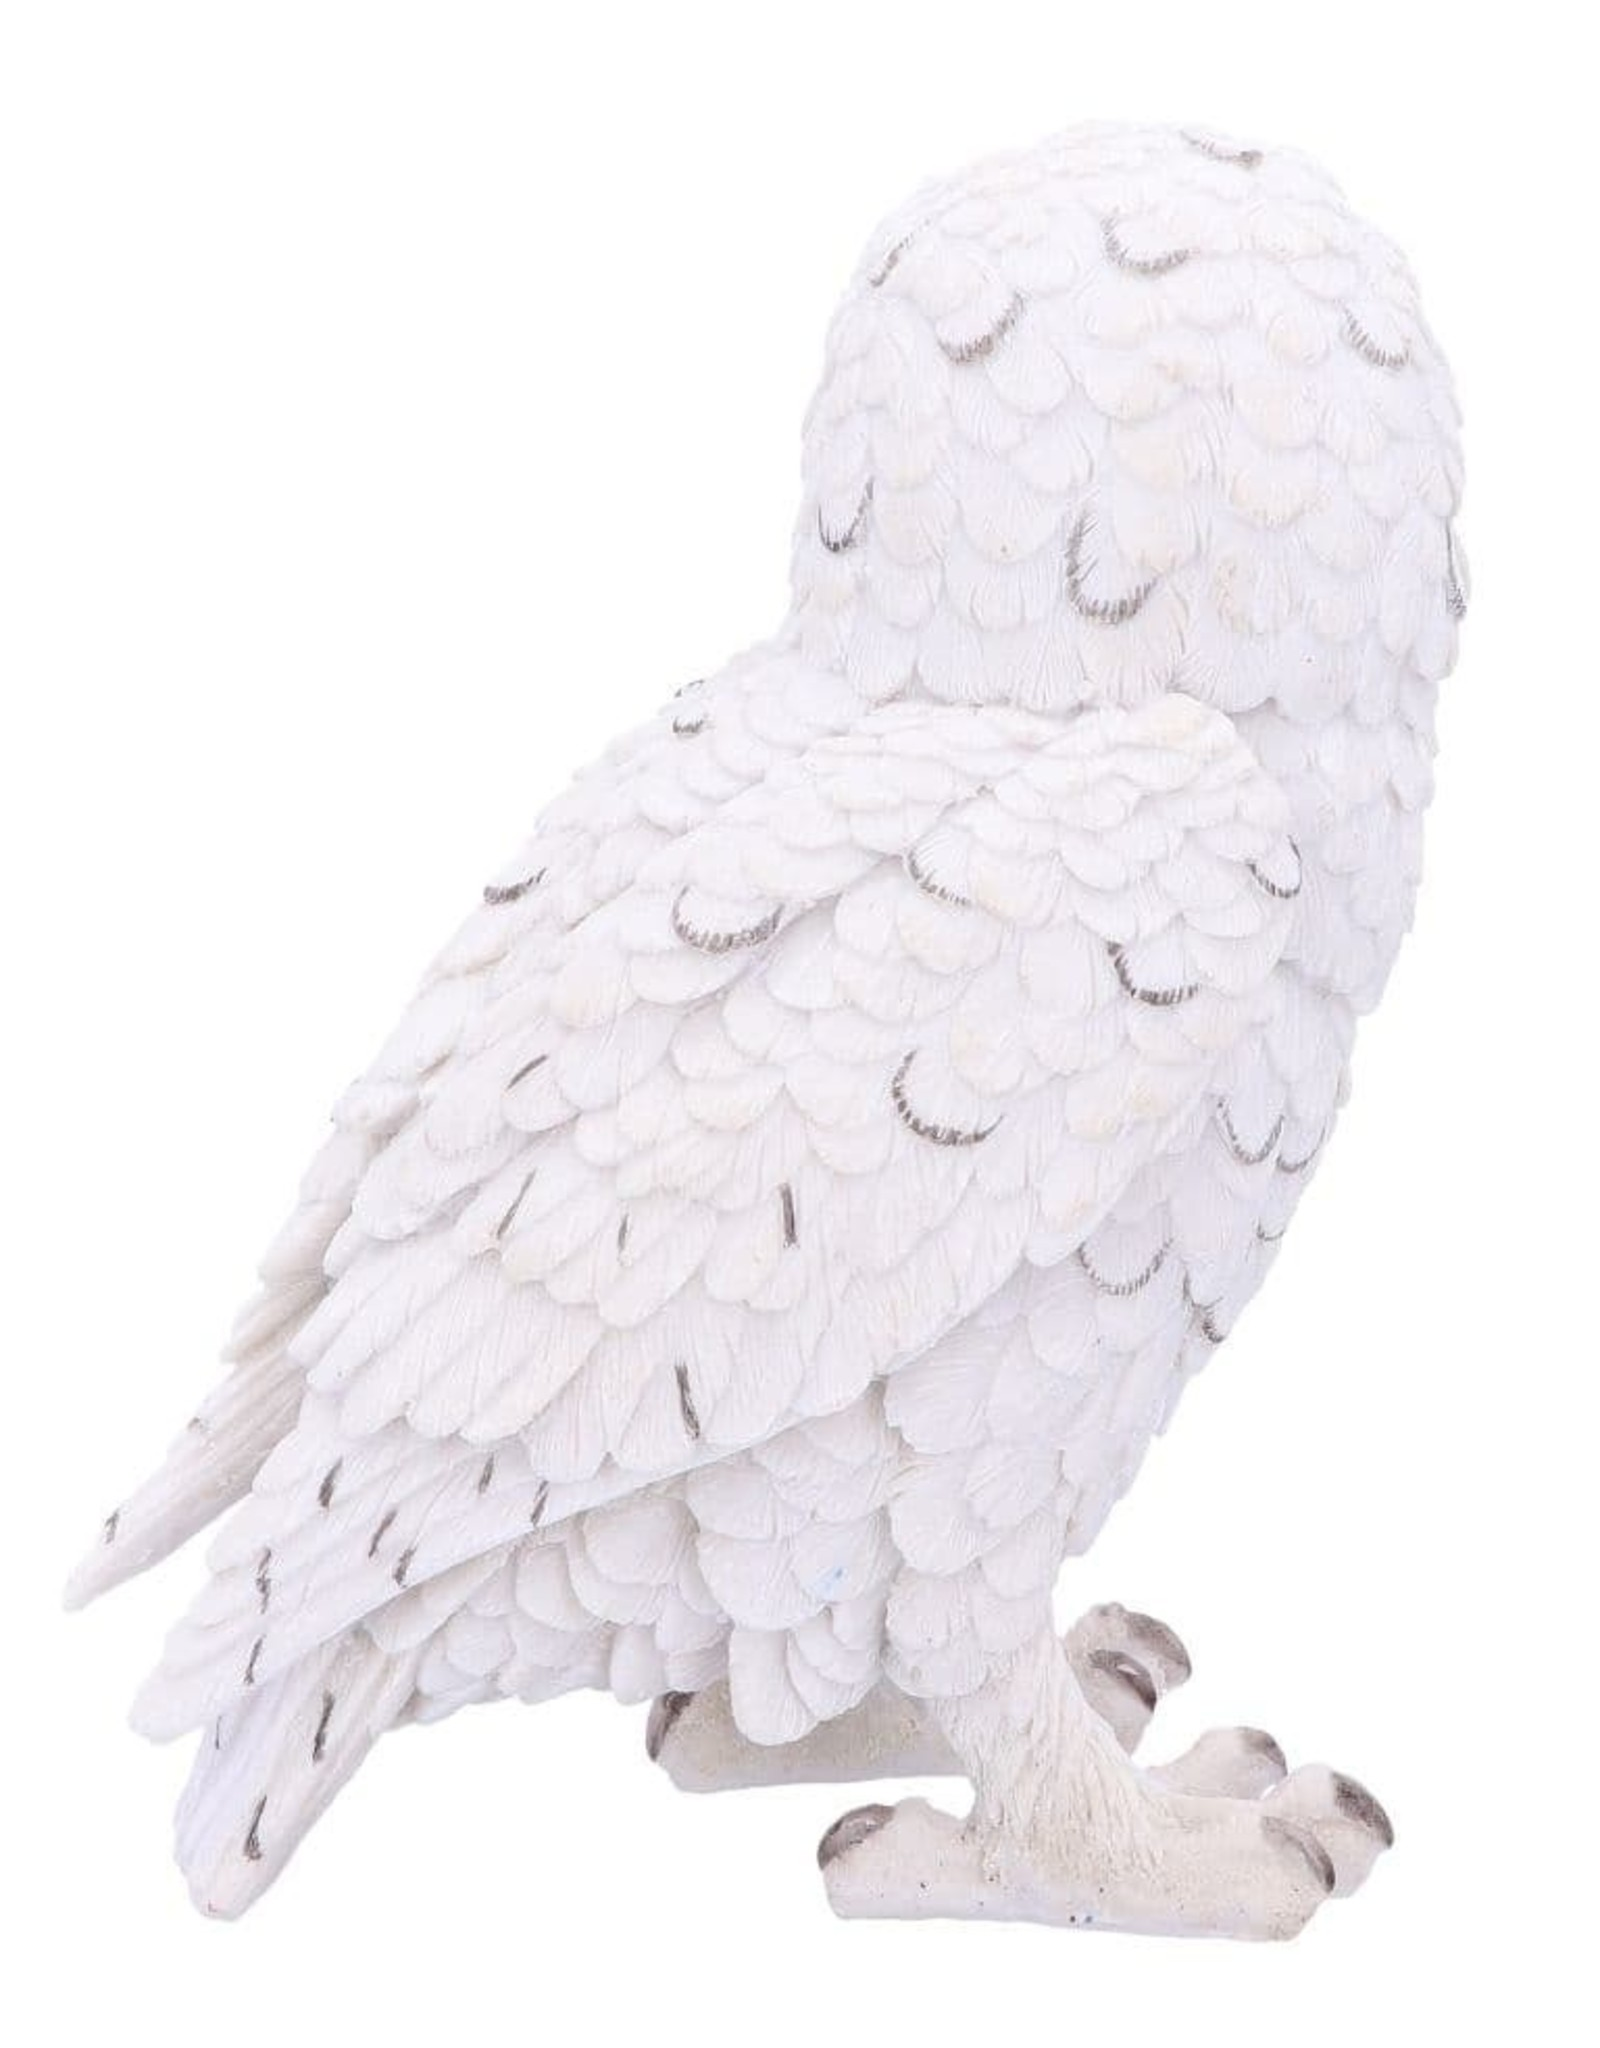 Alator Collectables - Snowy Watch Witte Uil beeld Large (20cm ) - Nemesis Now